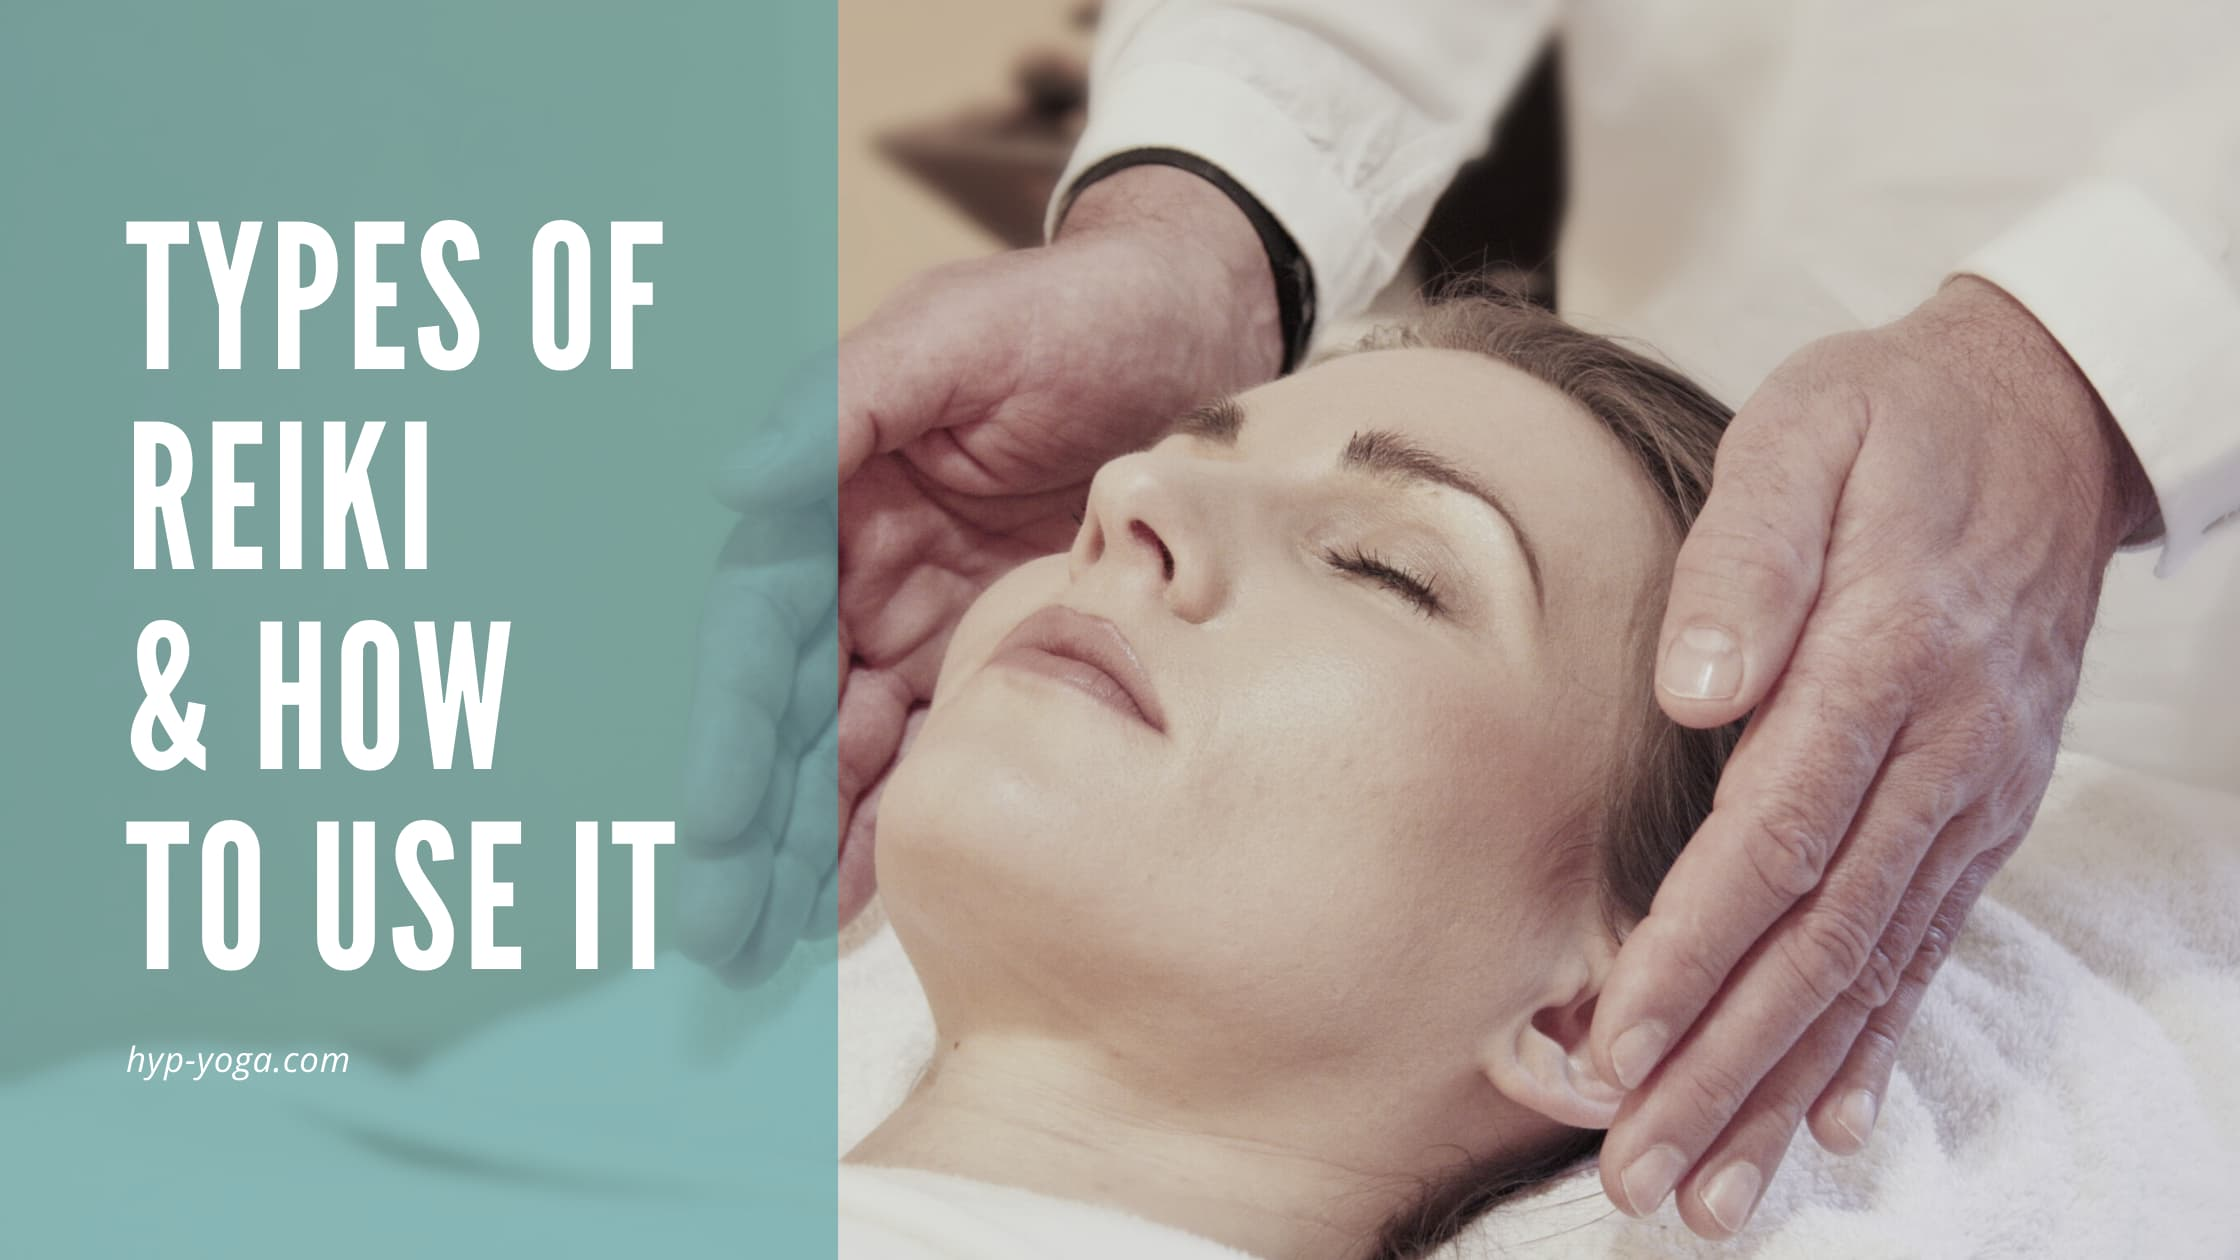 types of reiki, what is reiki, how to use reiki